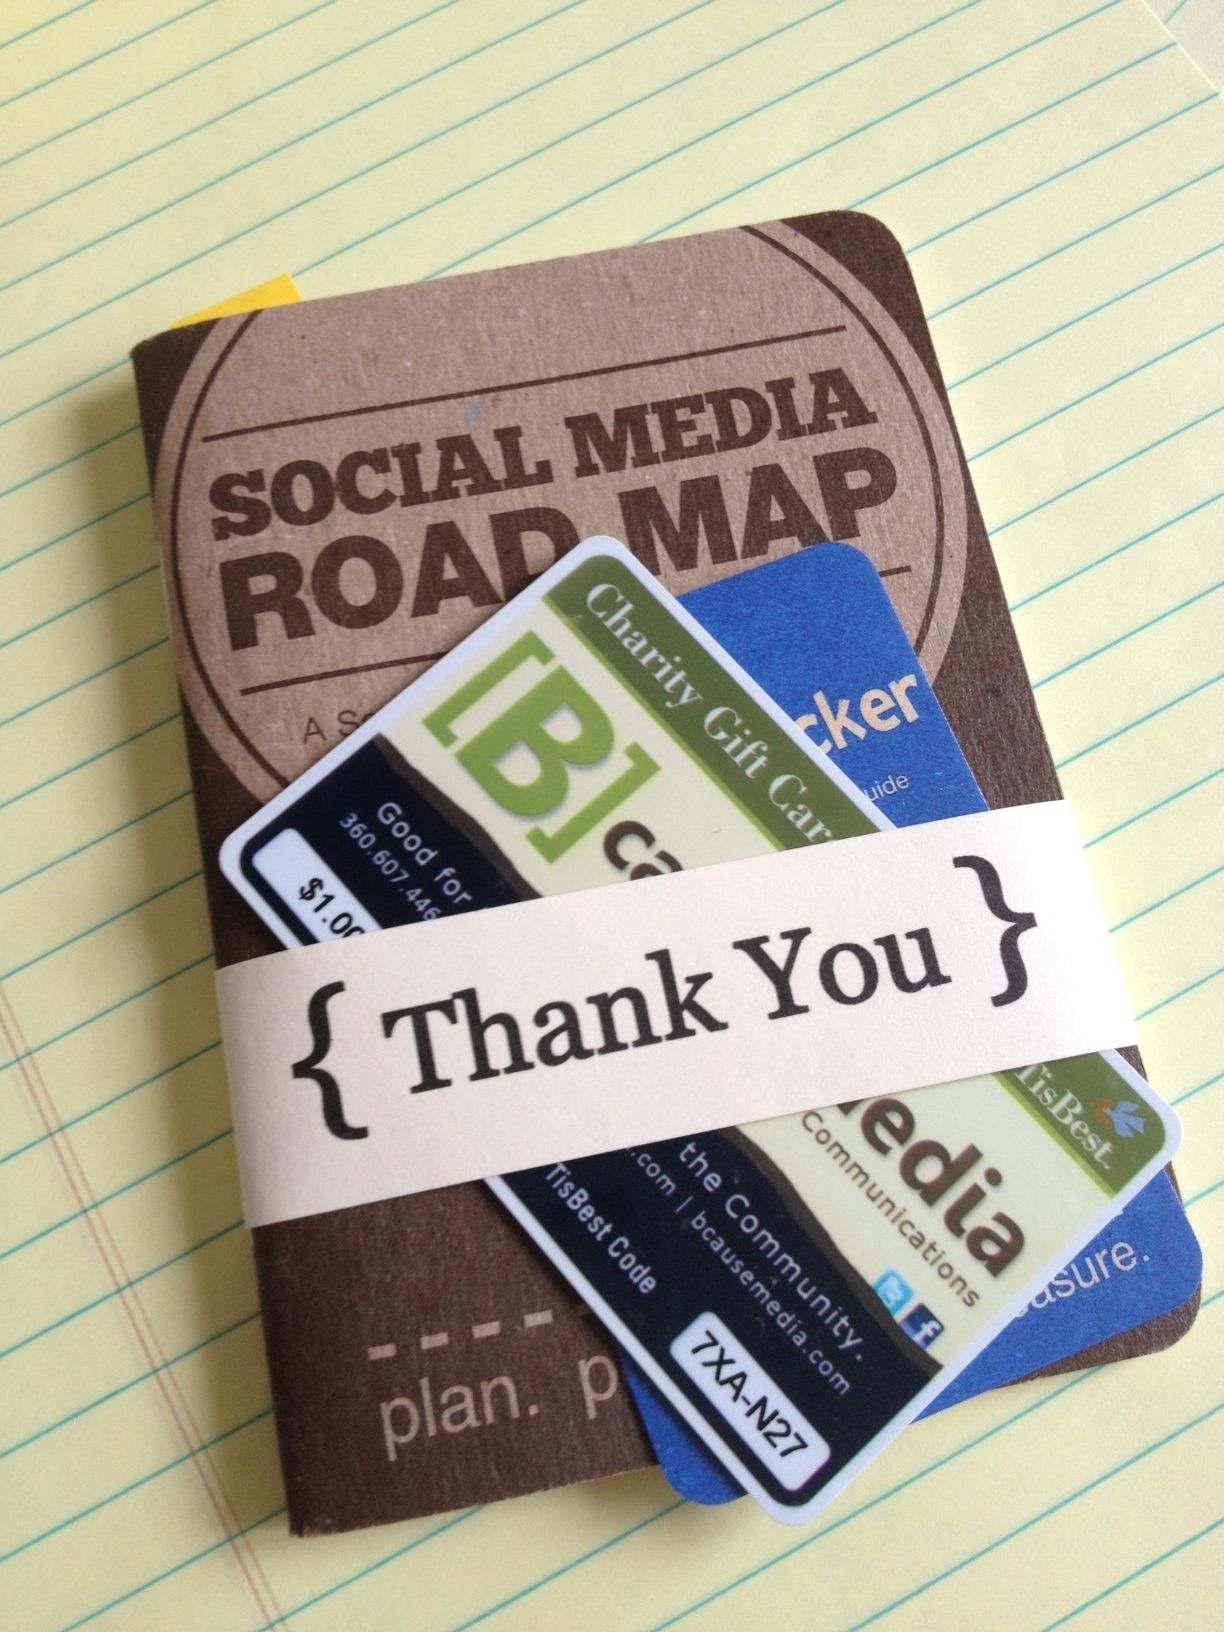 I've got my copy of Social Media Road Map by SMO! Do you have yours yet?  This is a great tool for creating an effective social media strategy! Very useful - love it! Well done Mr. @Noland Hoshino :-)